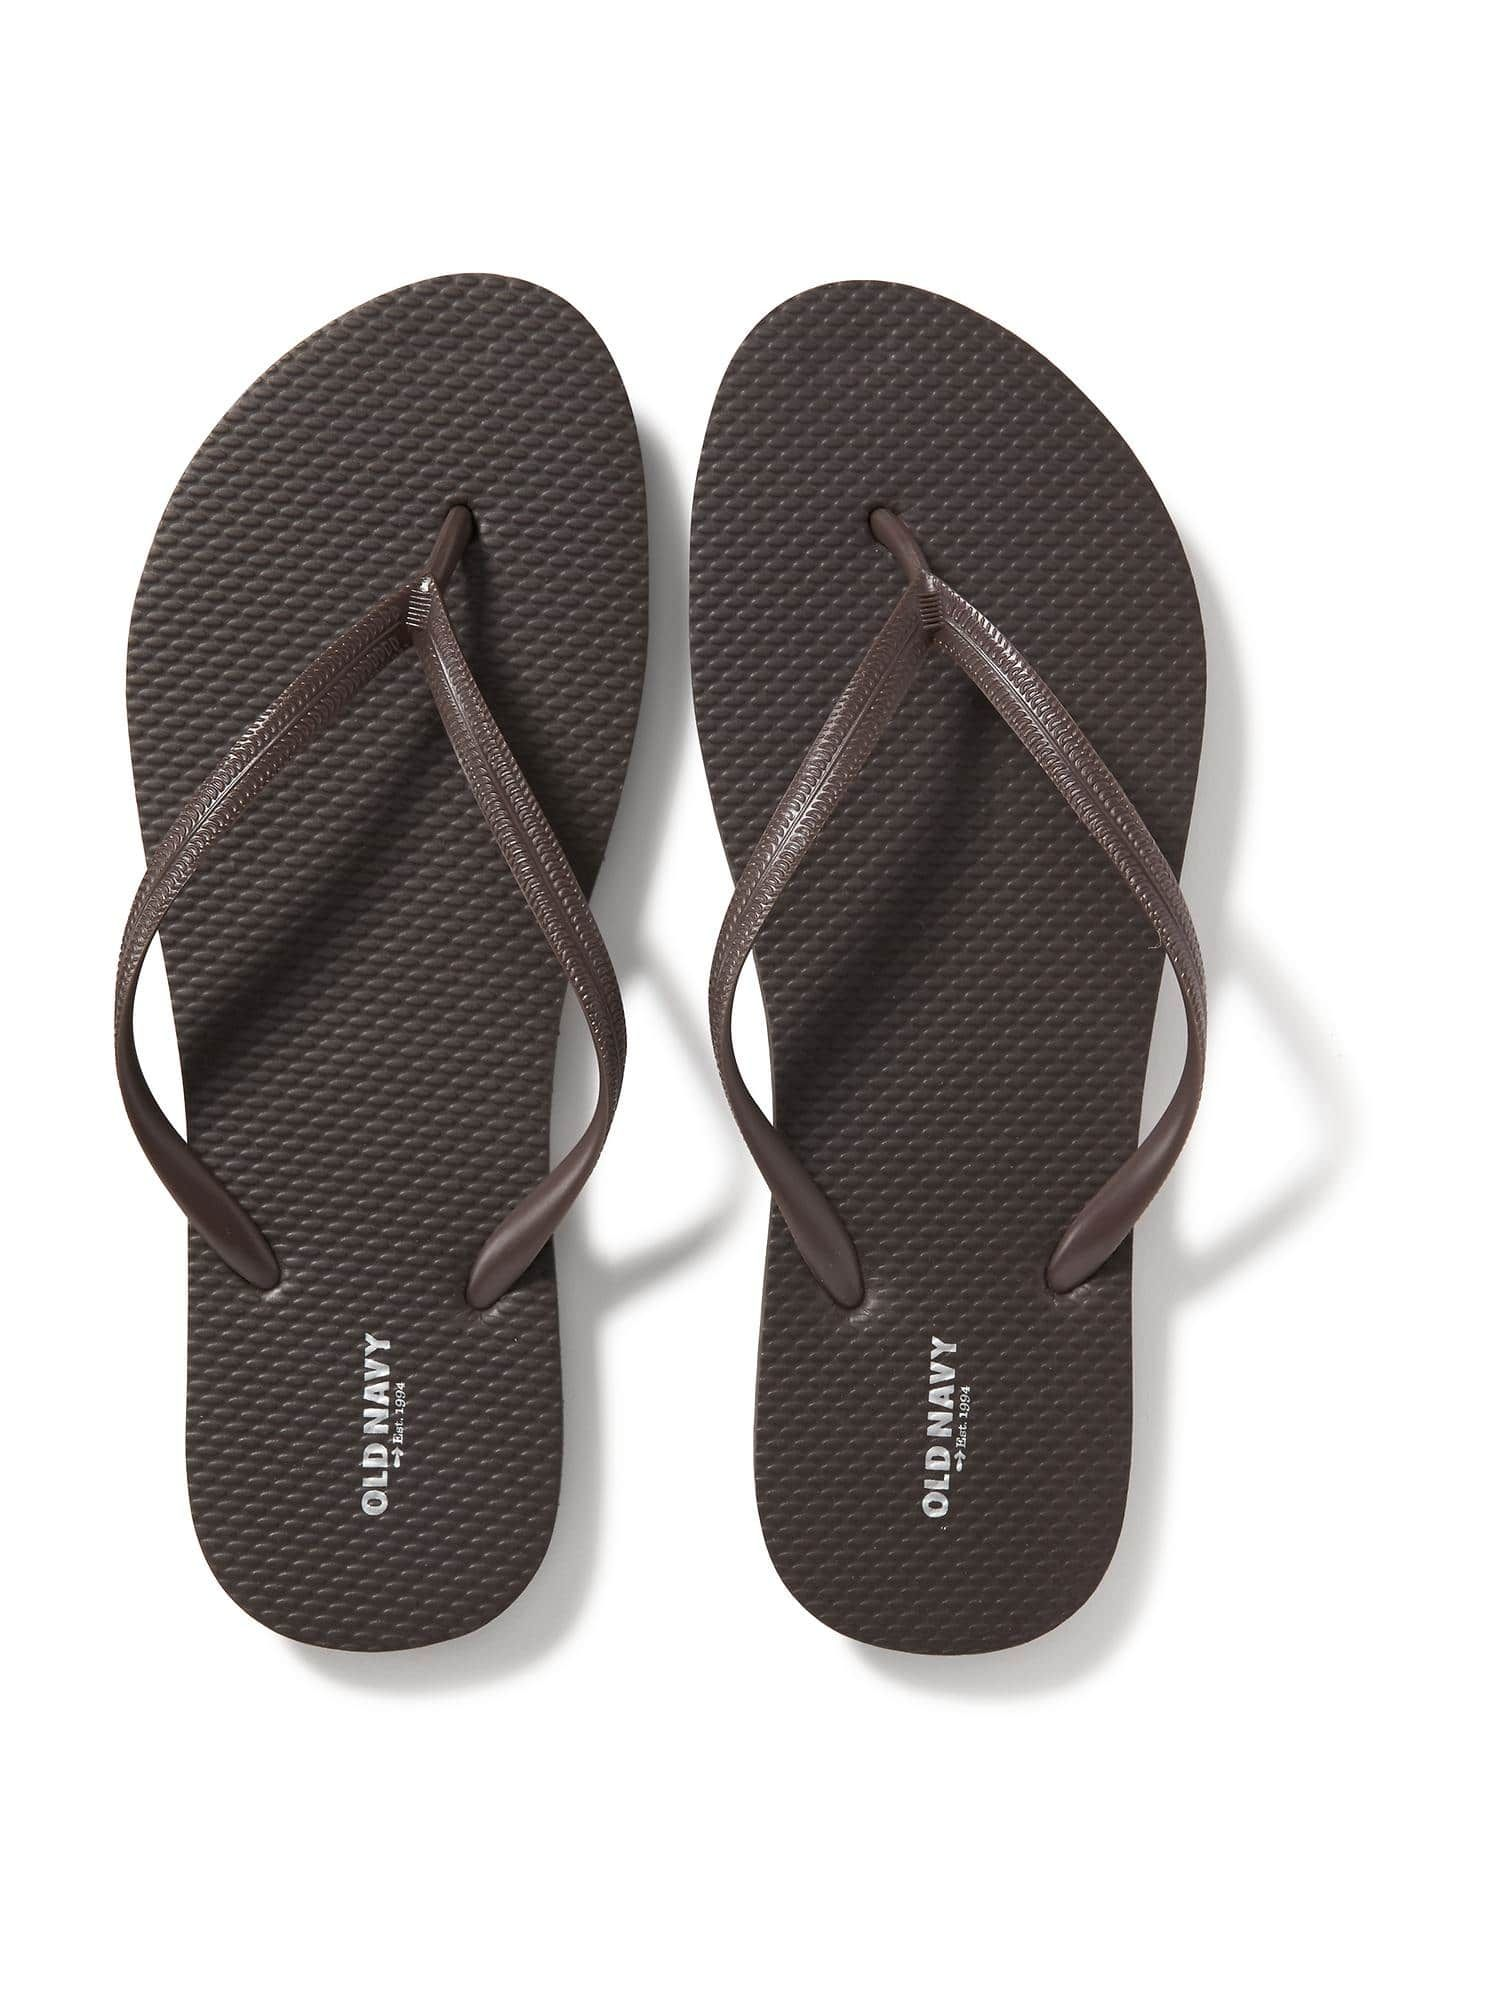 abbff7af06a5a Old Navy - Classic Flip-Flops for Women - Color is Bradley Brown